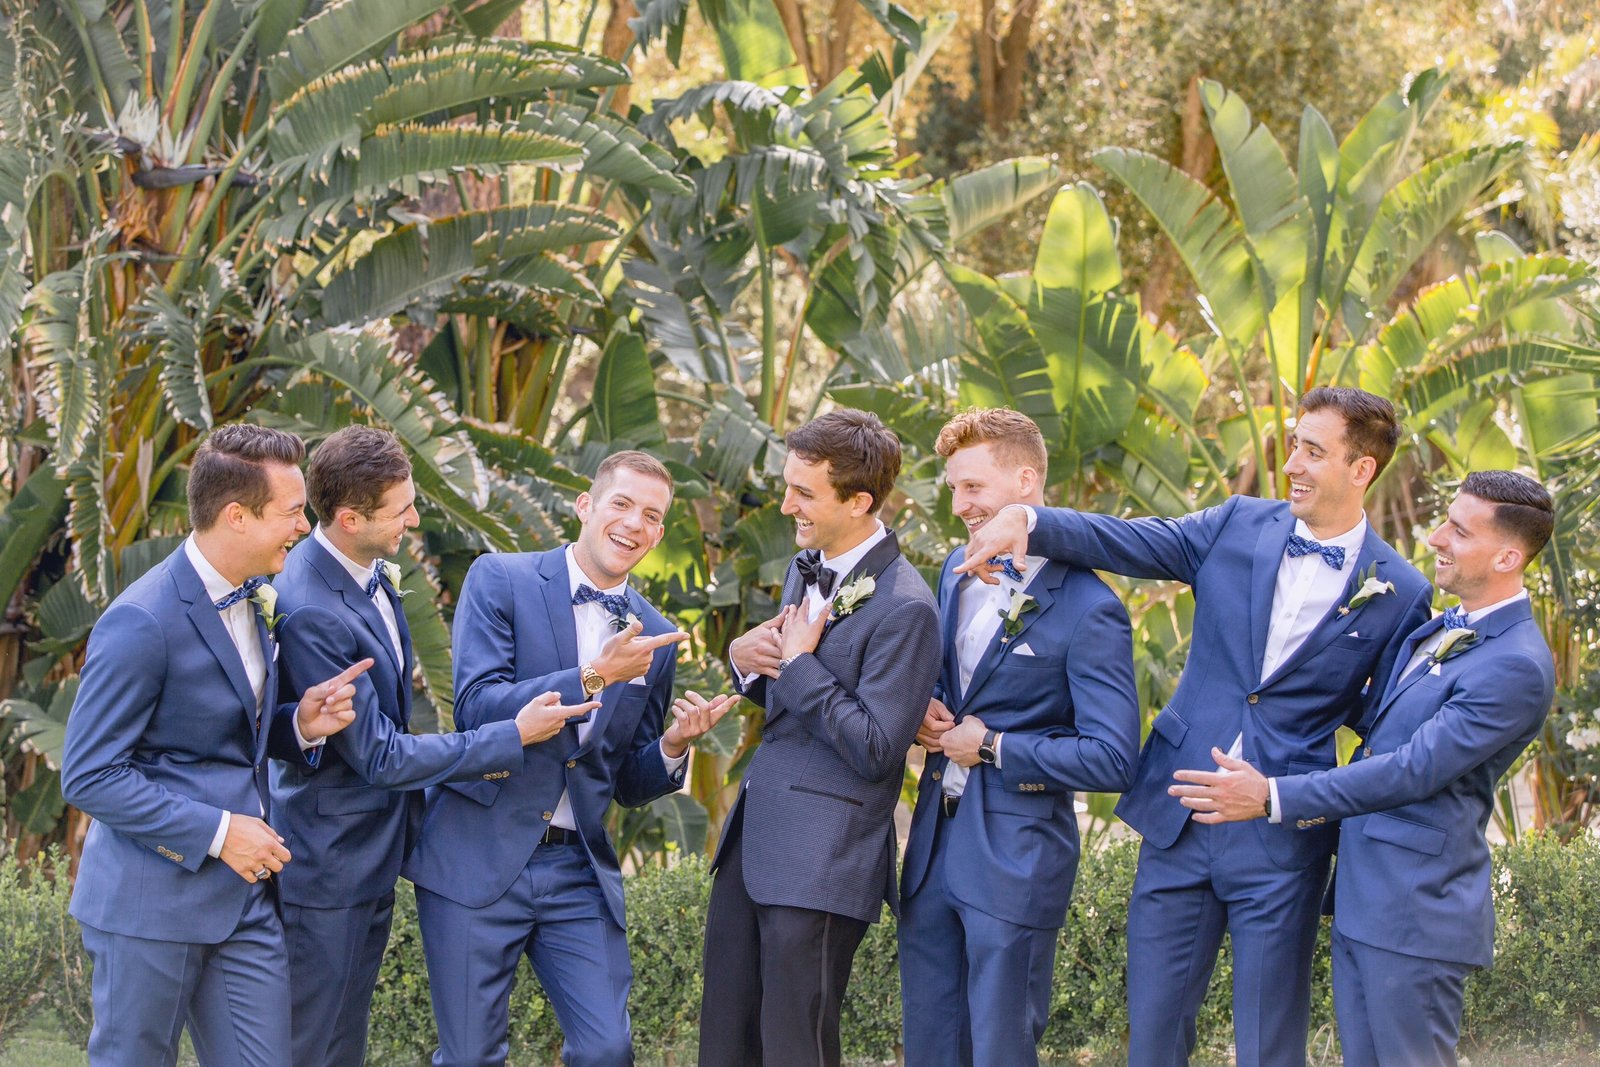 newhall mansion groomsmen  goofing off during portraits